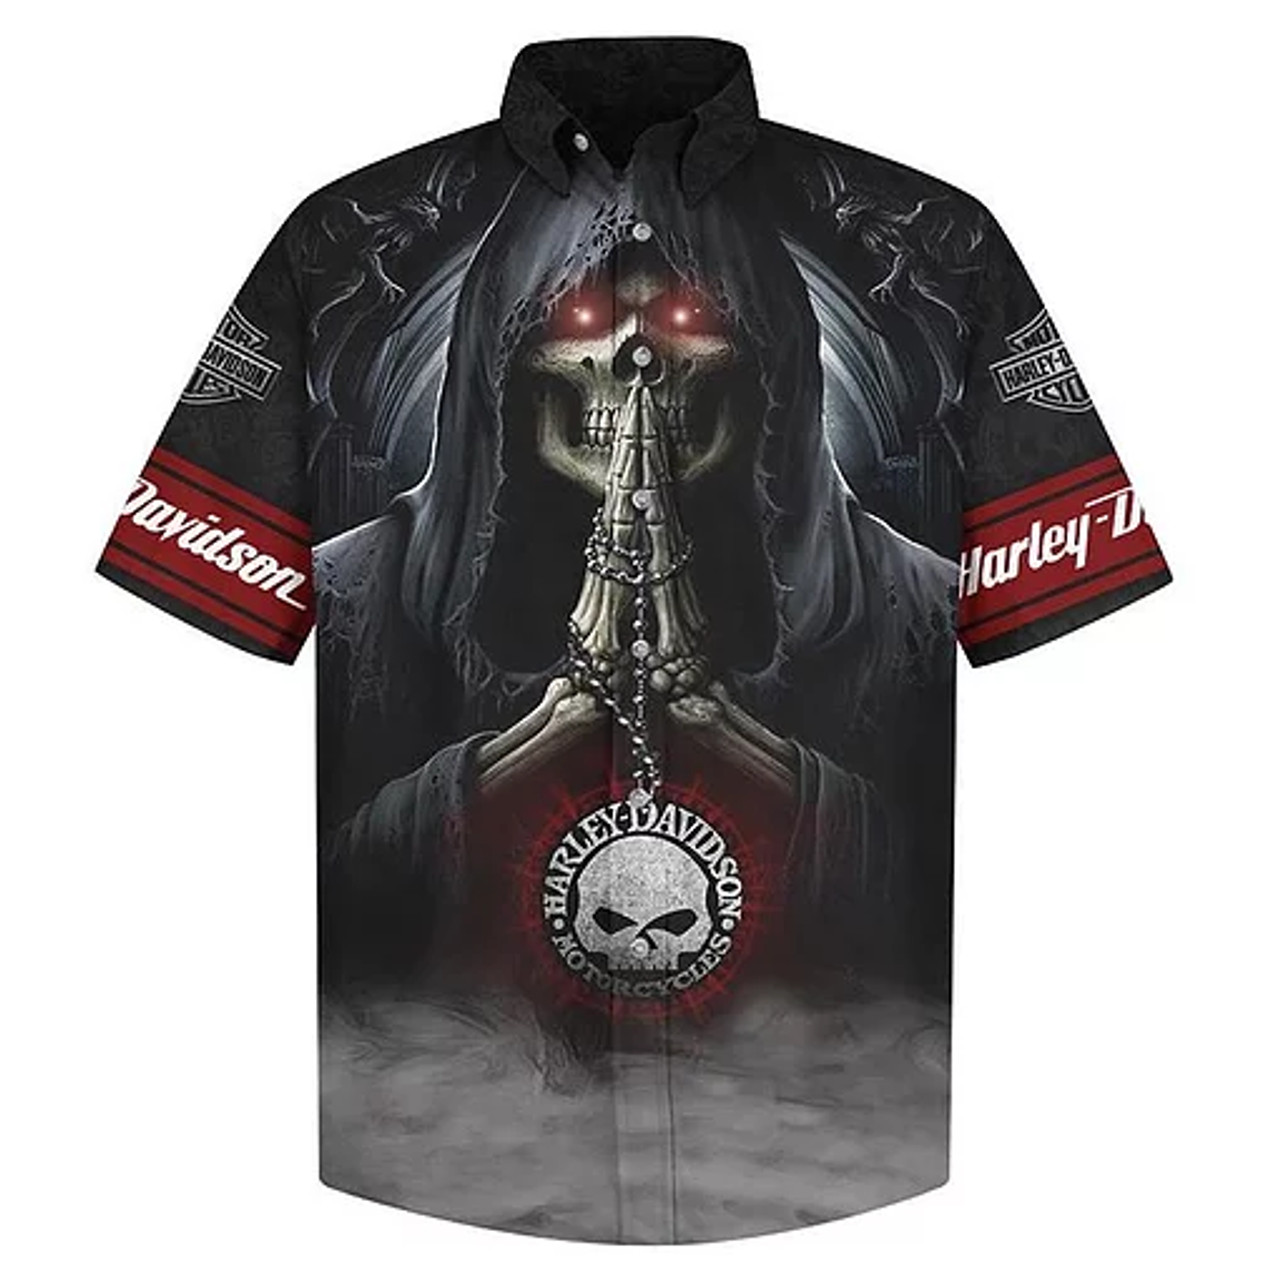 **(OFFICIAL-HARLEY-DAVIDSON-MOTORCYCLE-BIKERS-BUTTON-UP-FRONT-DRESS-SHIRTS & BIG-HARLEY-HOODED-GRIM-REAPER-SKULL-CUSTOM-3D-PRINTED-DESIGN/CUSTOM-DETAILED-3D-GRAPHIC-PRINTED-DOUBLE-SIDED-DESIGN/CLASSIC-OFFICIAL-CUSTOM-HARLEY-LOGOS & CLASSIC-OFFICIAL-HARLEY-BLACK & ORANGE-COLORS/WARM-PREMIUM-HARLEY-BIKERS-RIDING-BUTTON-UP-FRONT-SPORT-SHIRTS)**